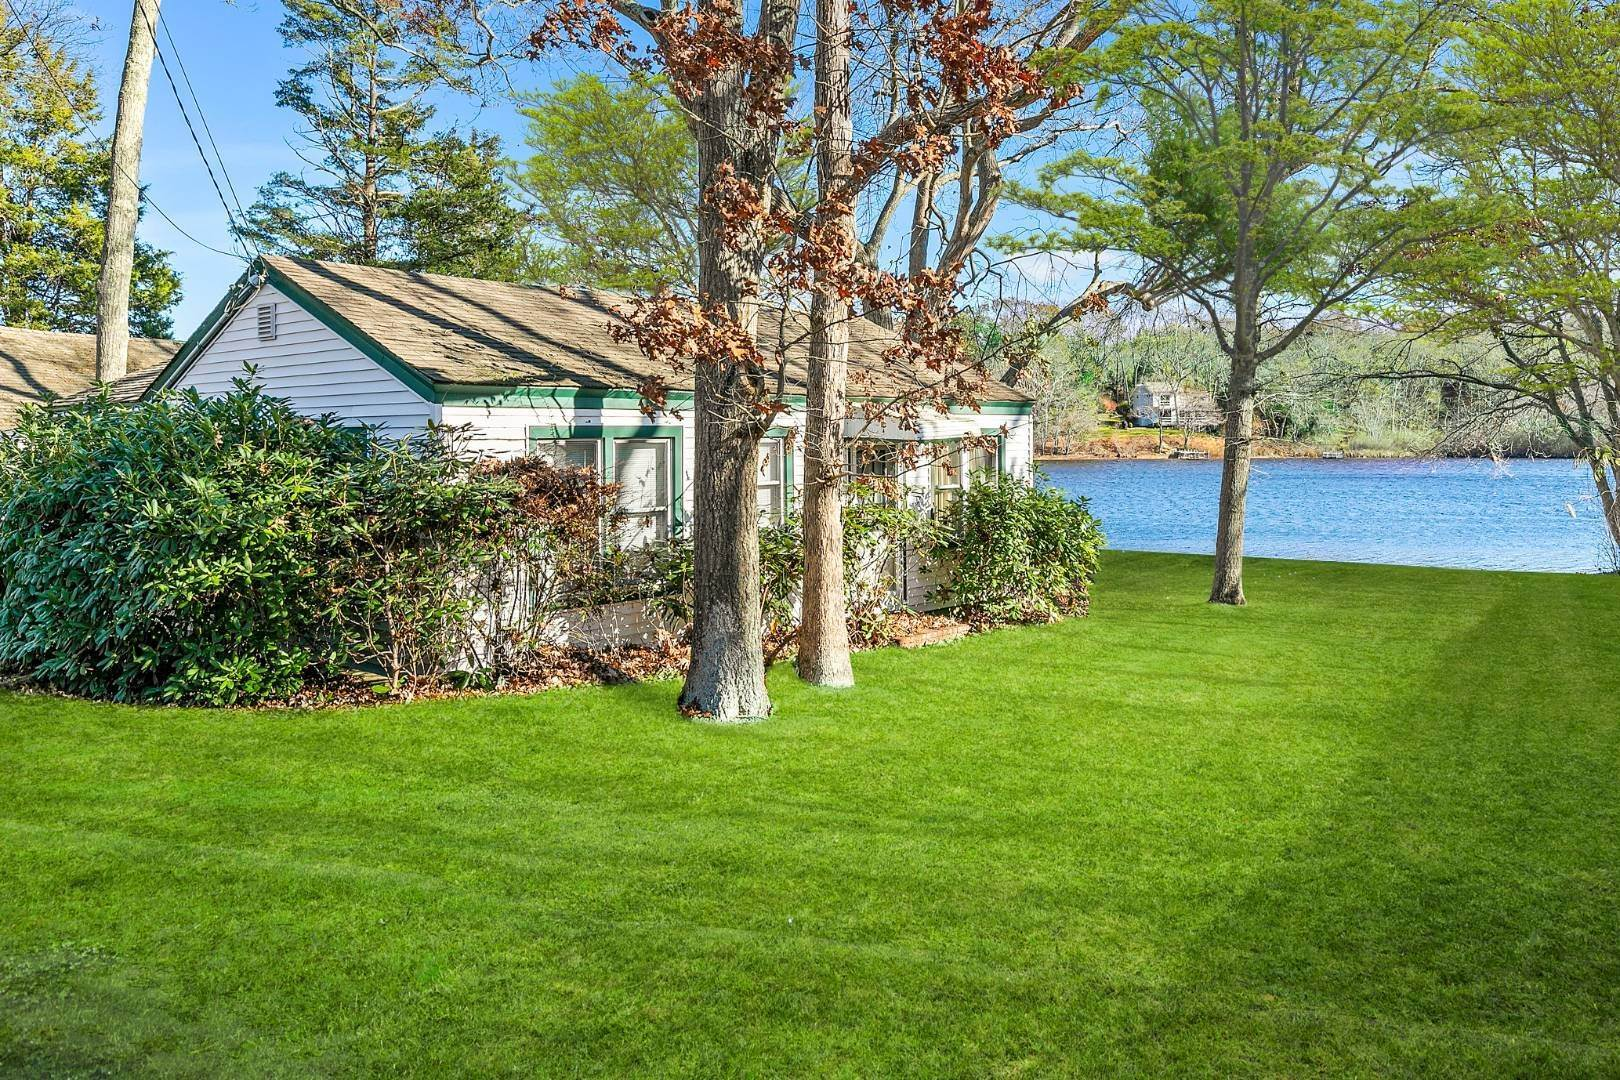 Single Family Home for Sale at Waterfront Cottage Gem 8 Justan Ave, Southampton, NY 11968